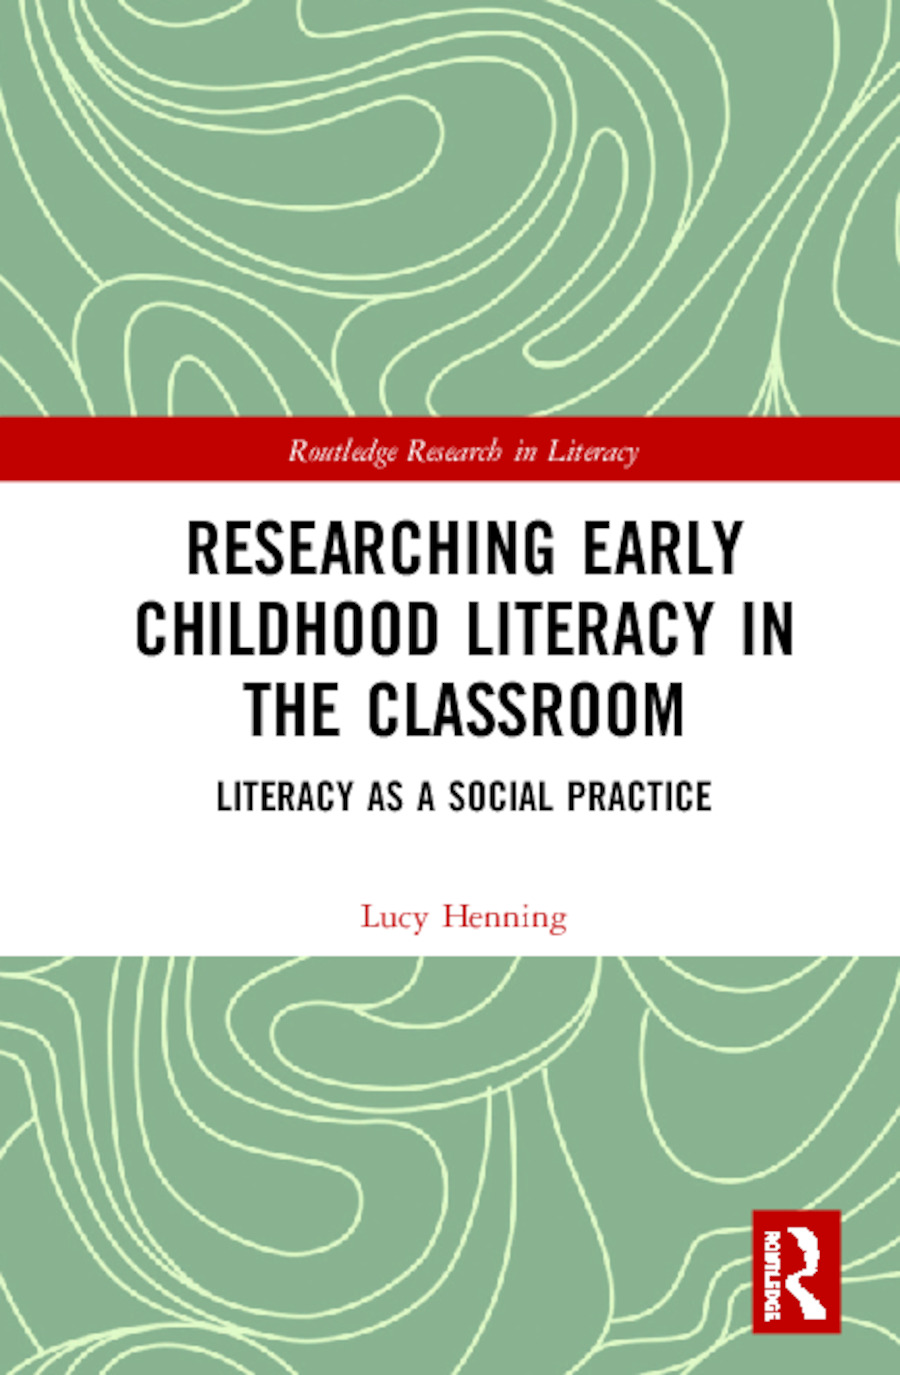 Researching Early Childhood Literacy in the Classroom: Literacy as a Social Practice book cover